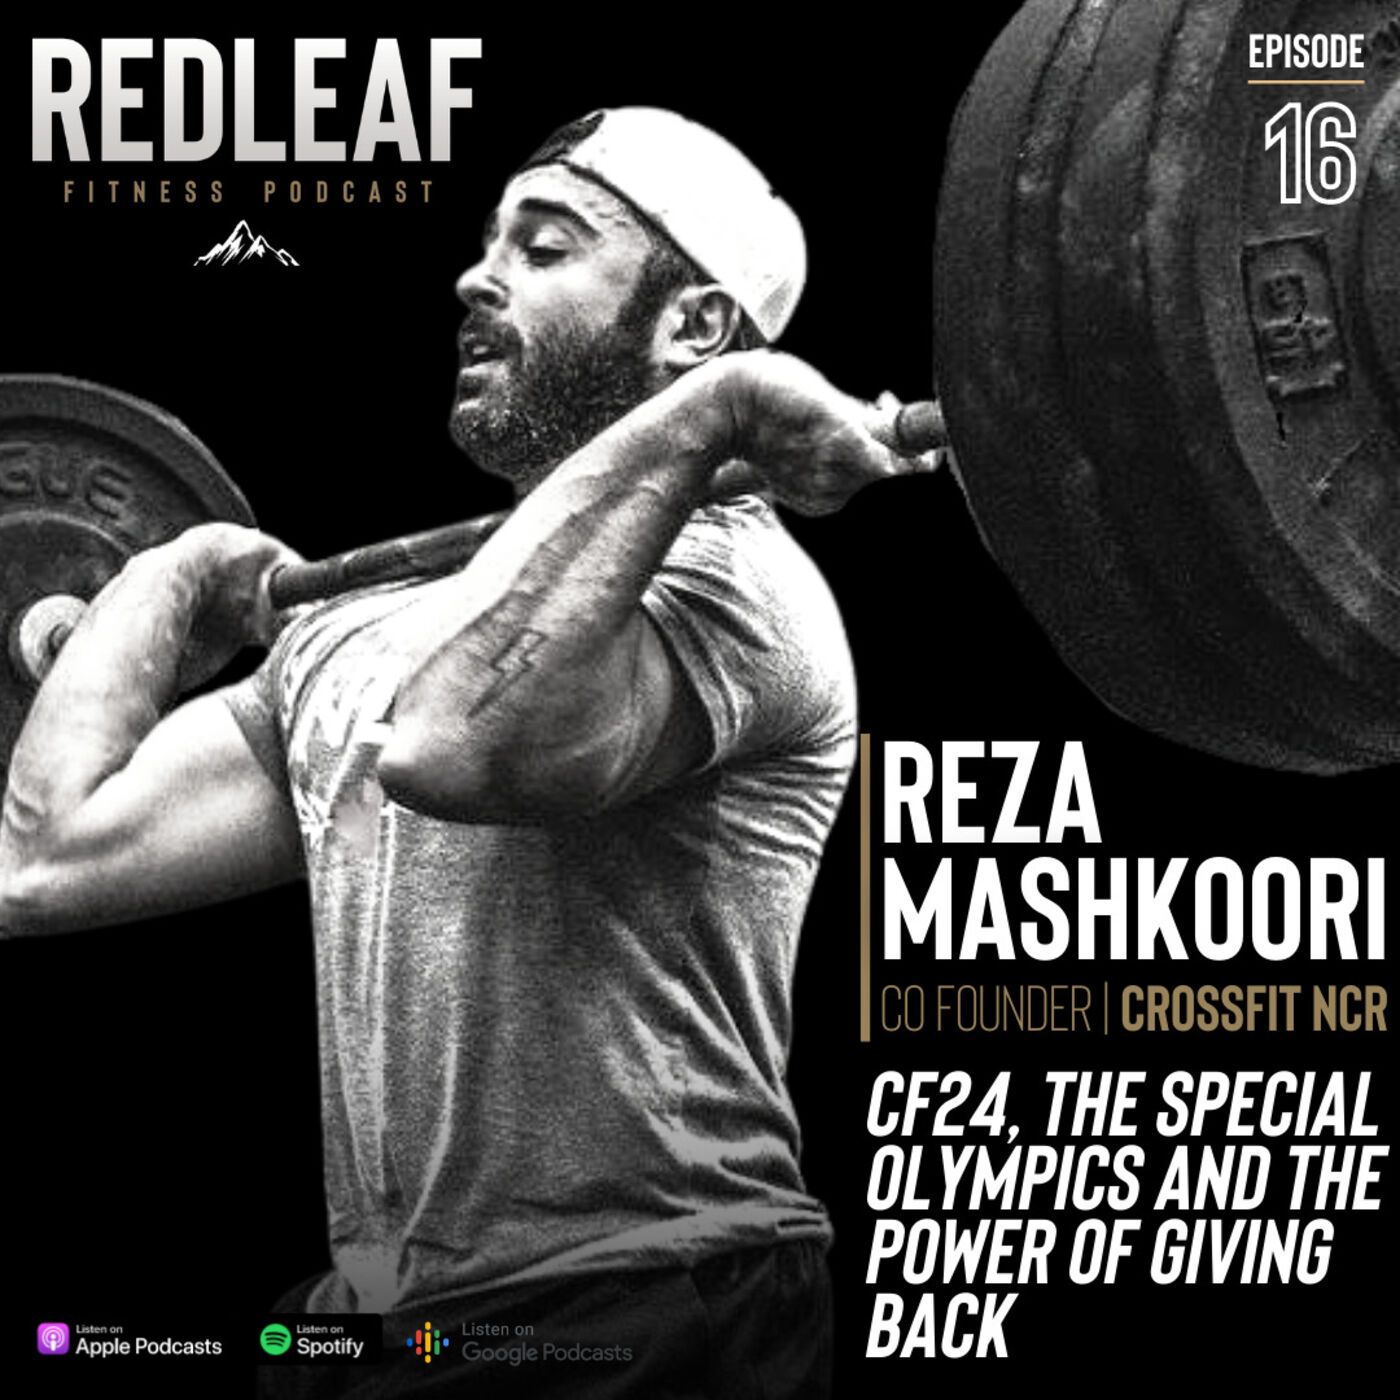 Ep.16 | Reza  Mashkoori, Co-Founder CrossFit NCR, talking about CF24, The Special Olympics and the power of giving back